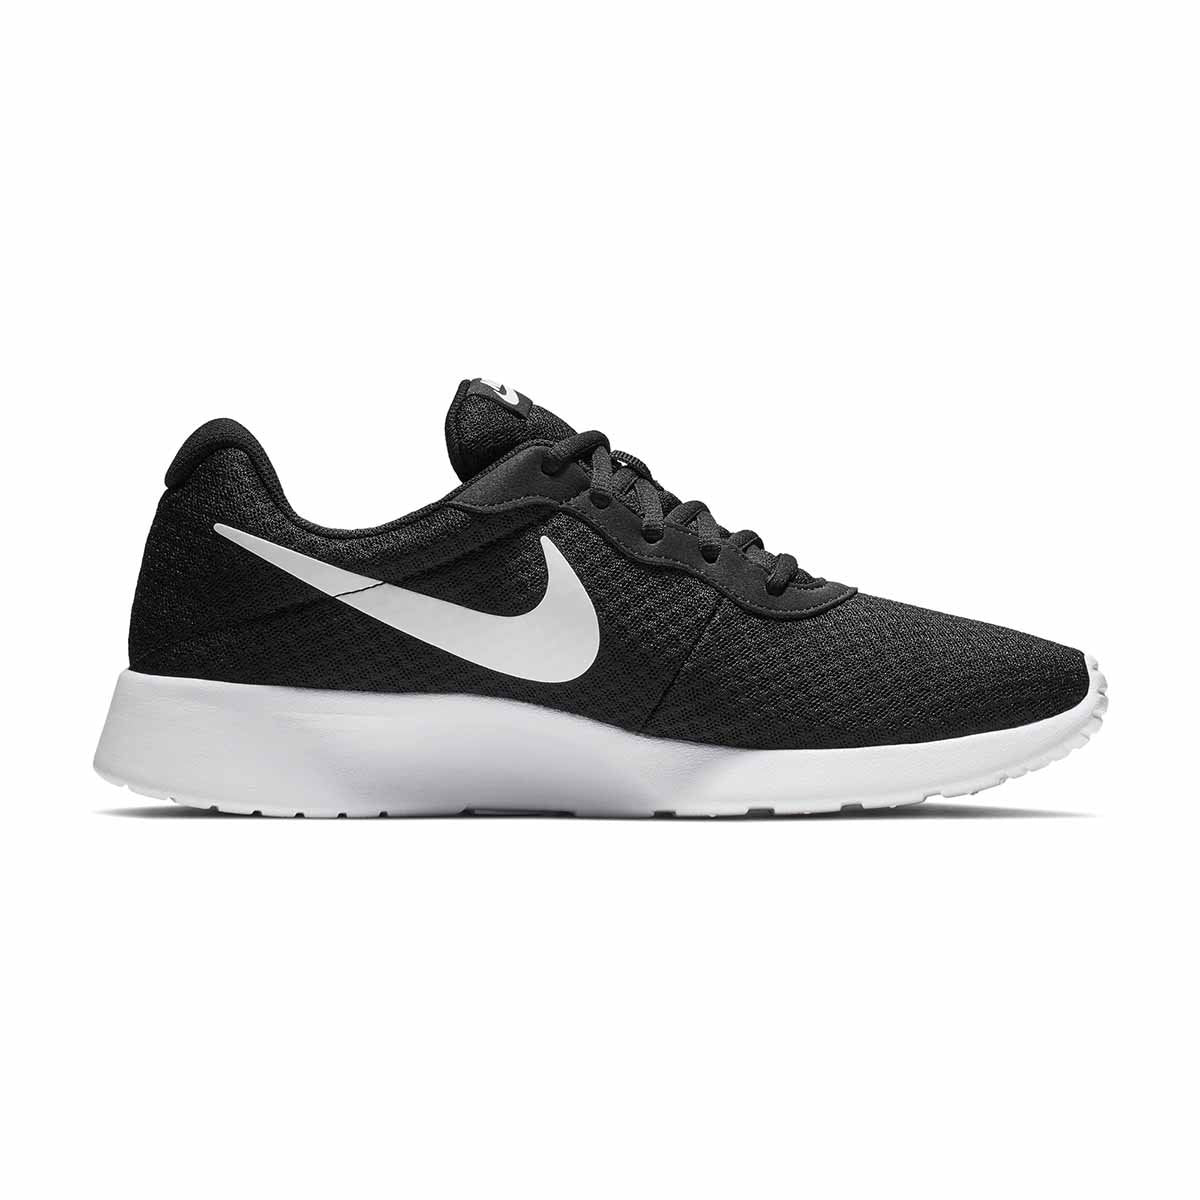 Men's Nike Tanjun